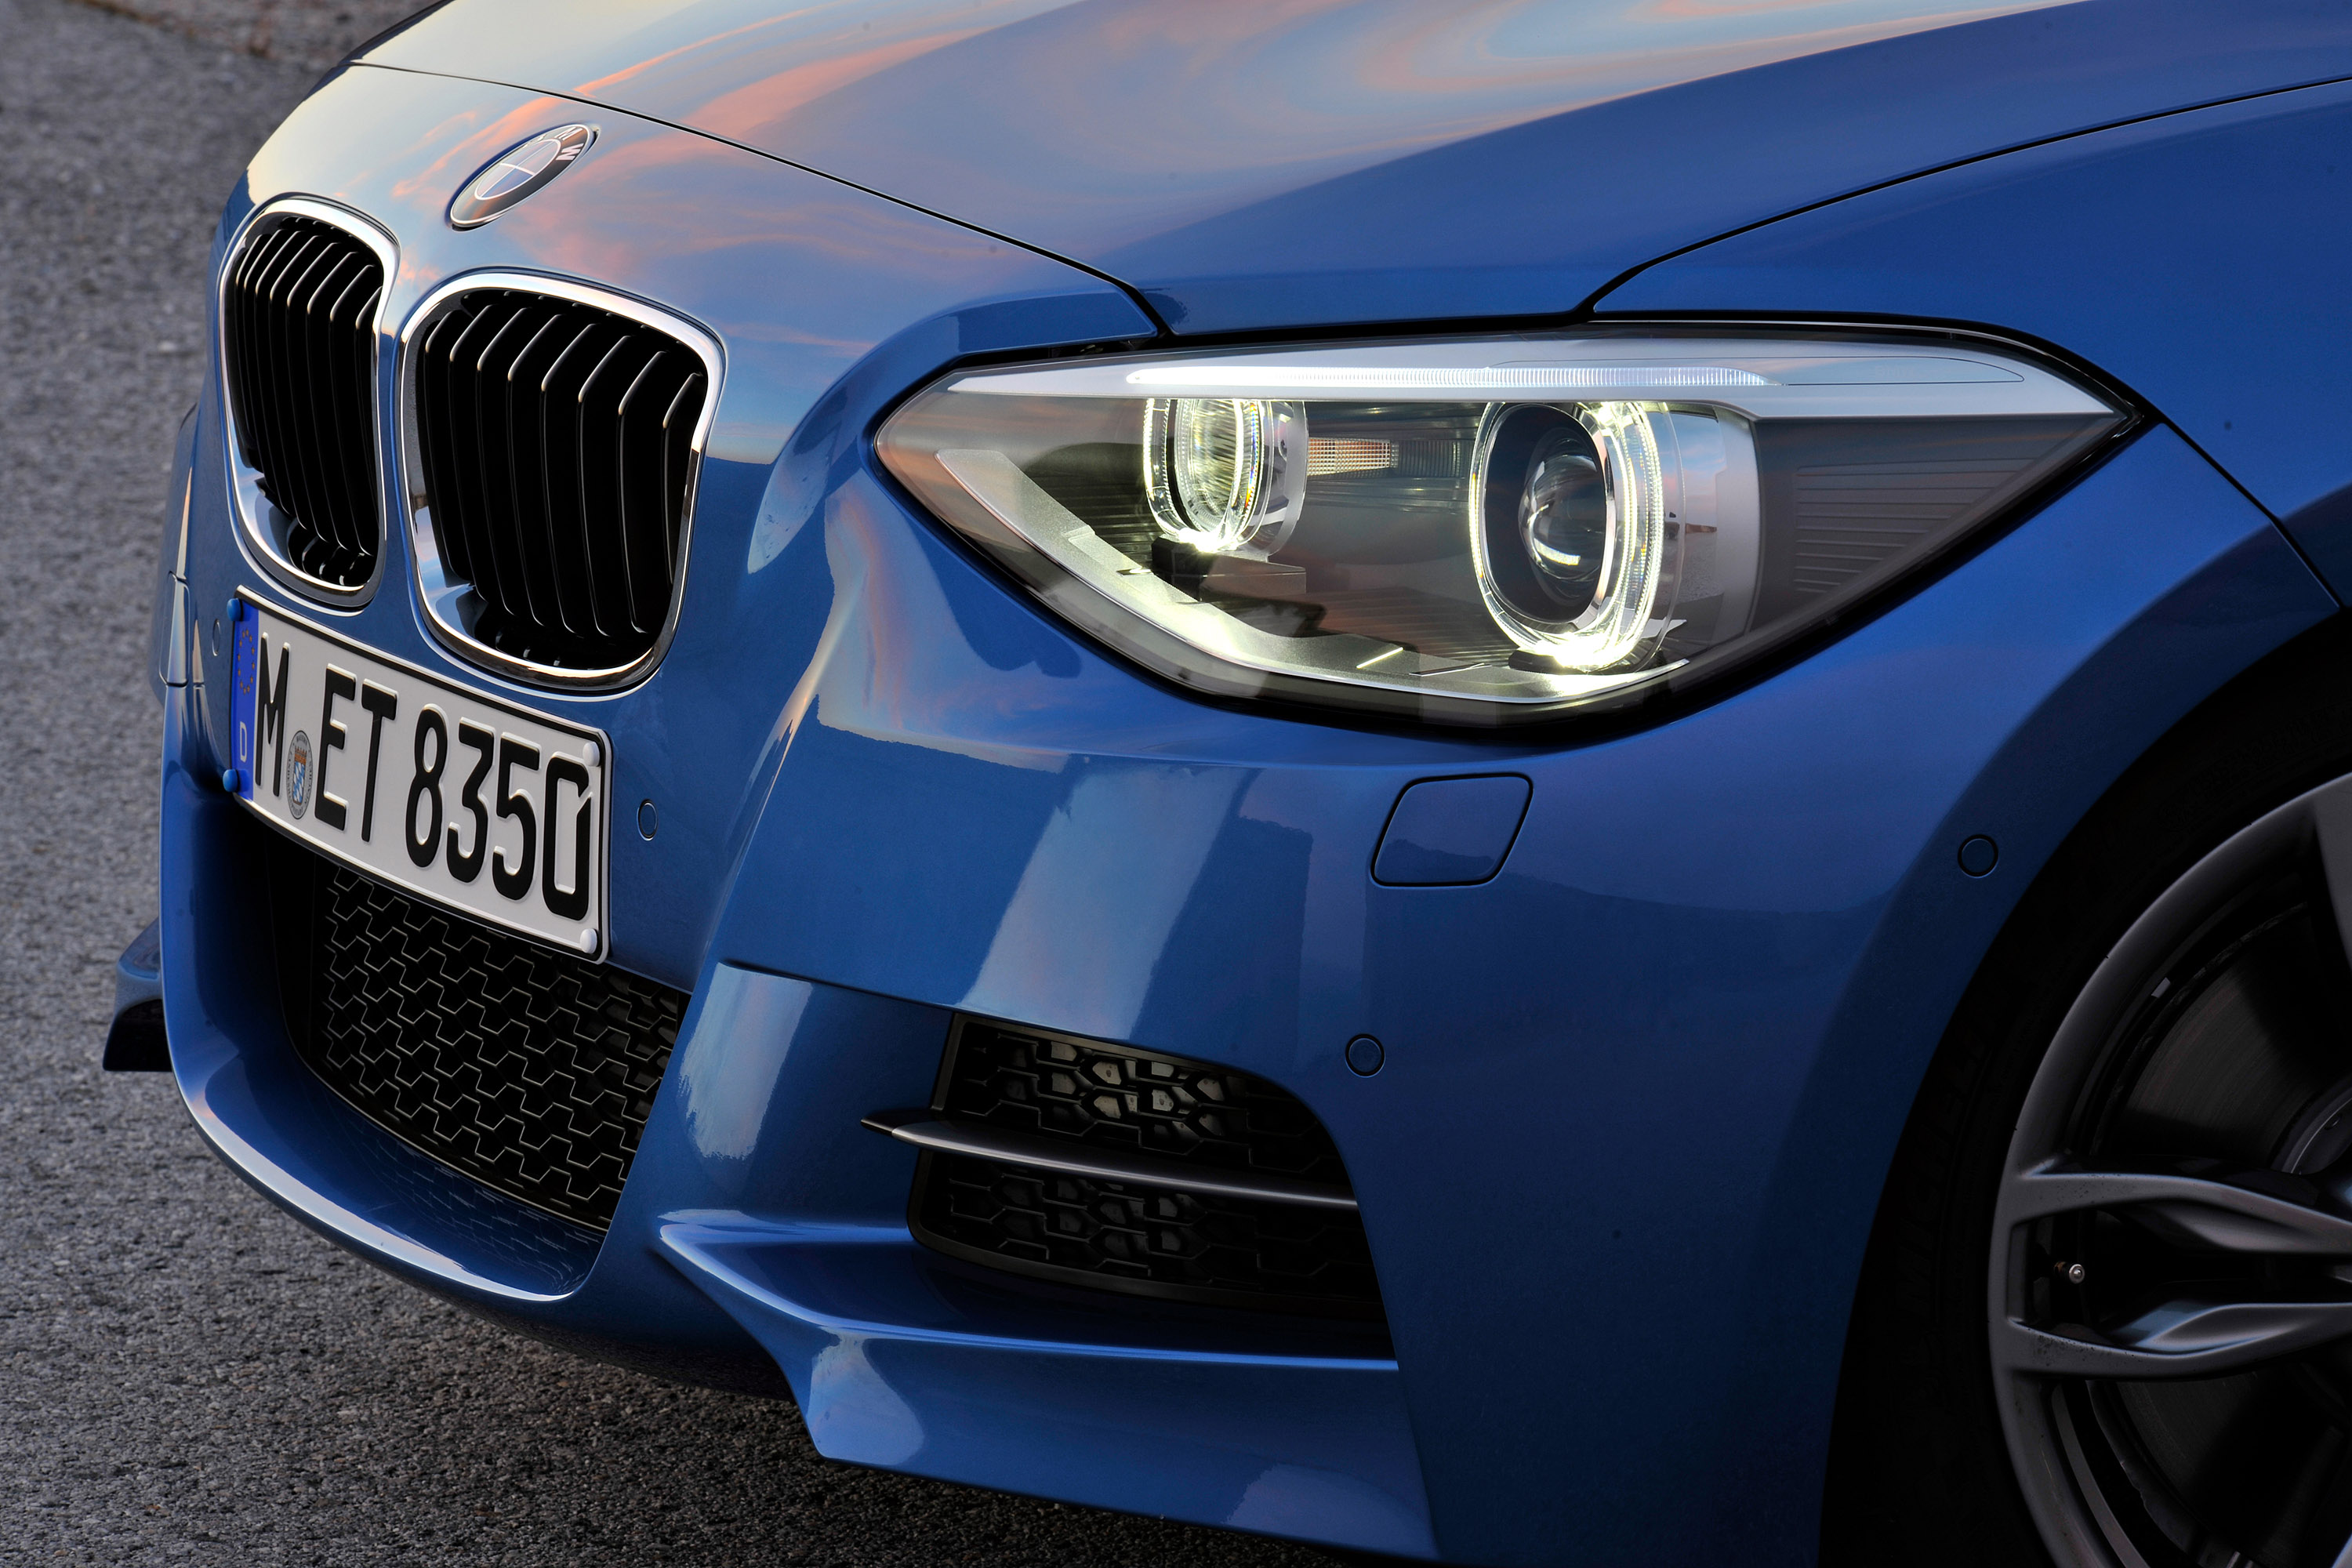 2013 BMW 1-Series 3-Door - HD Pictures @ carsinvasion.com